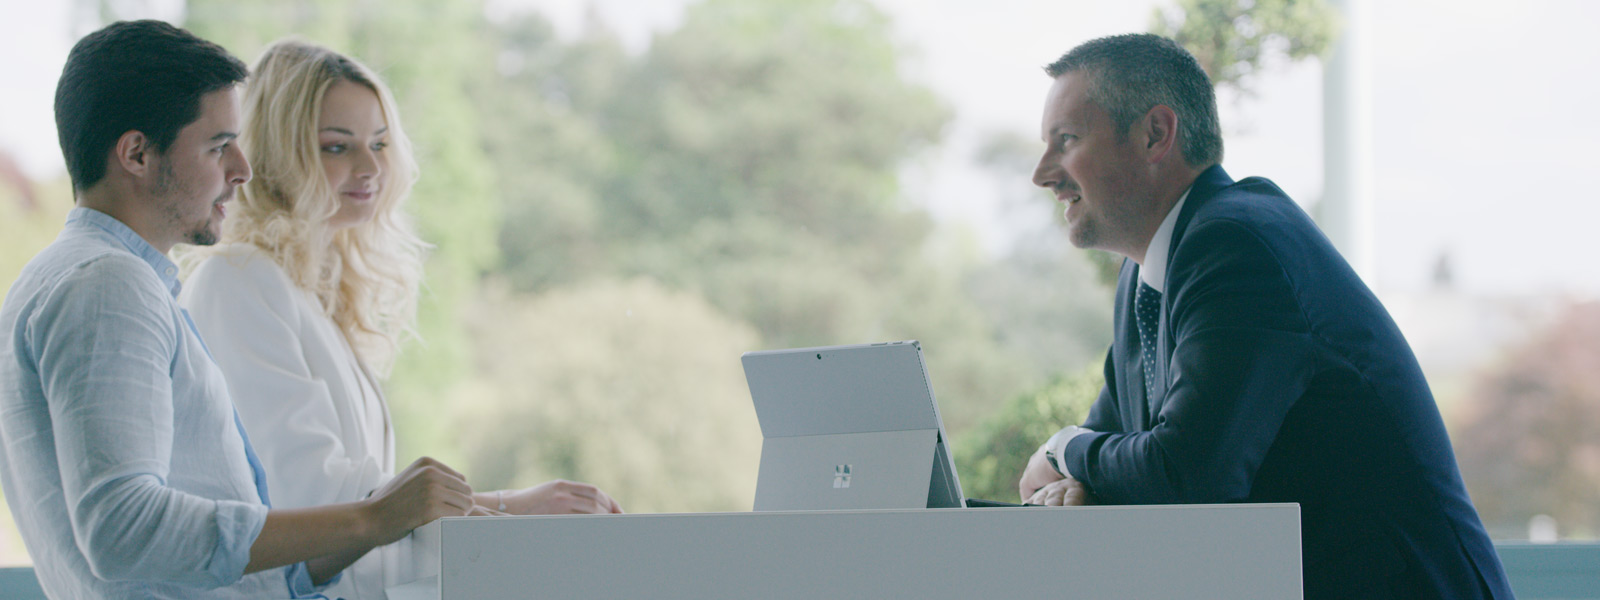 Three people sit at a desk with a Surface Pro with an outdoor setting in the background.